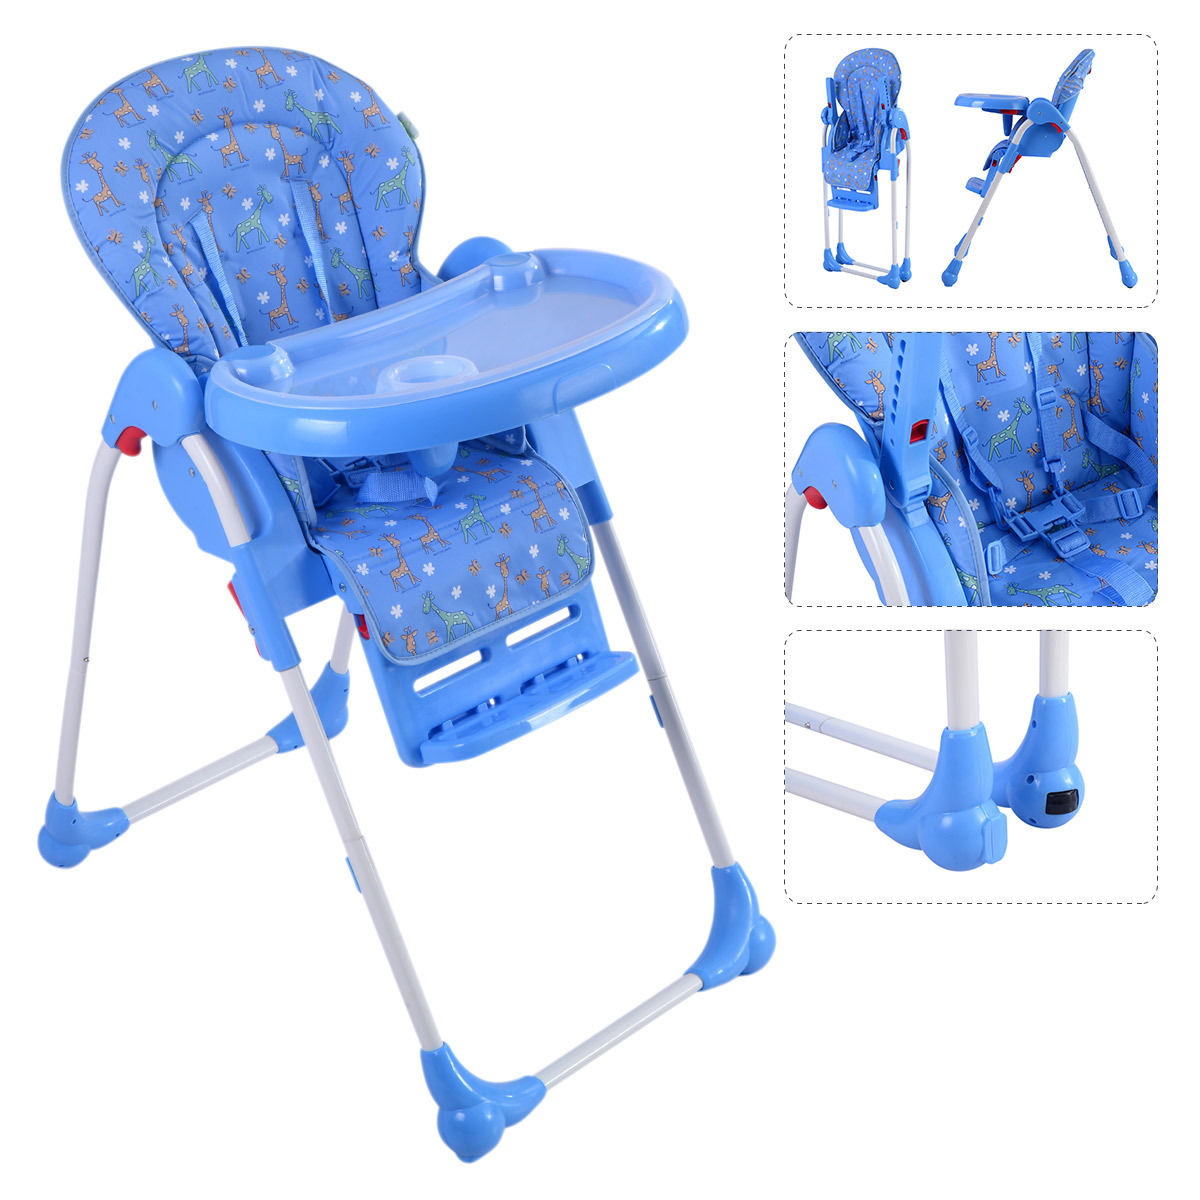 Adjustable Baby High Chair Infant Toddler Feeding Booster Seat Folding by costway